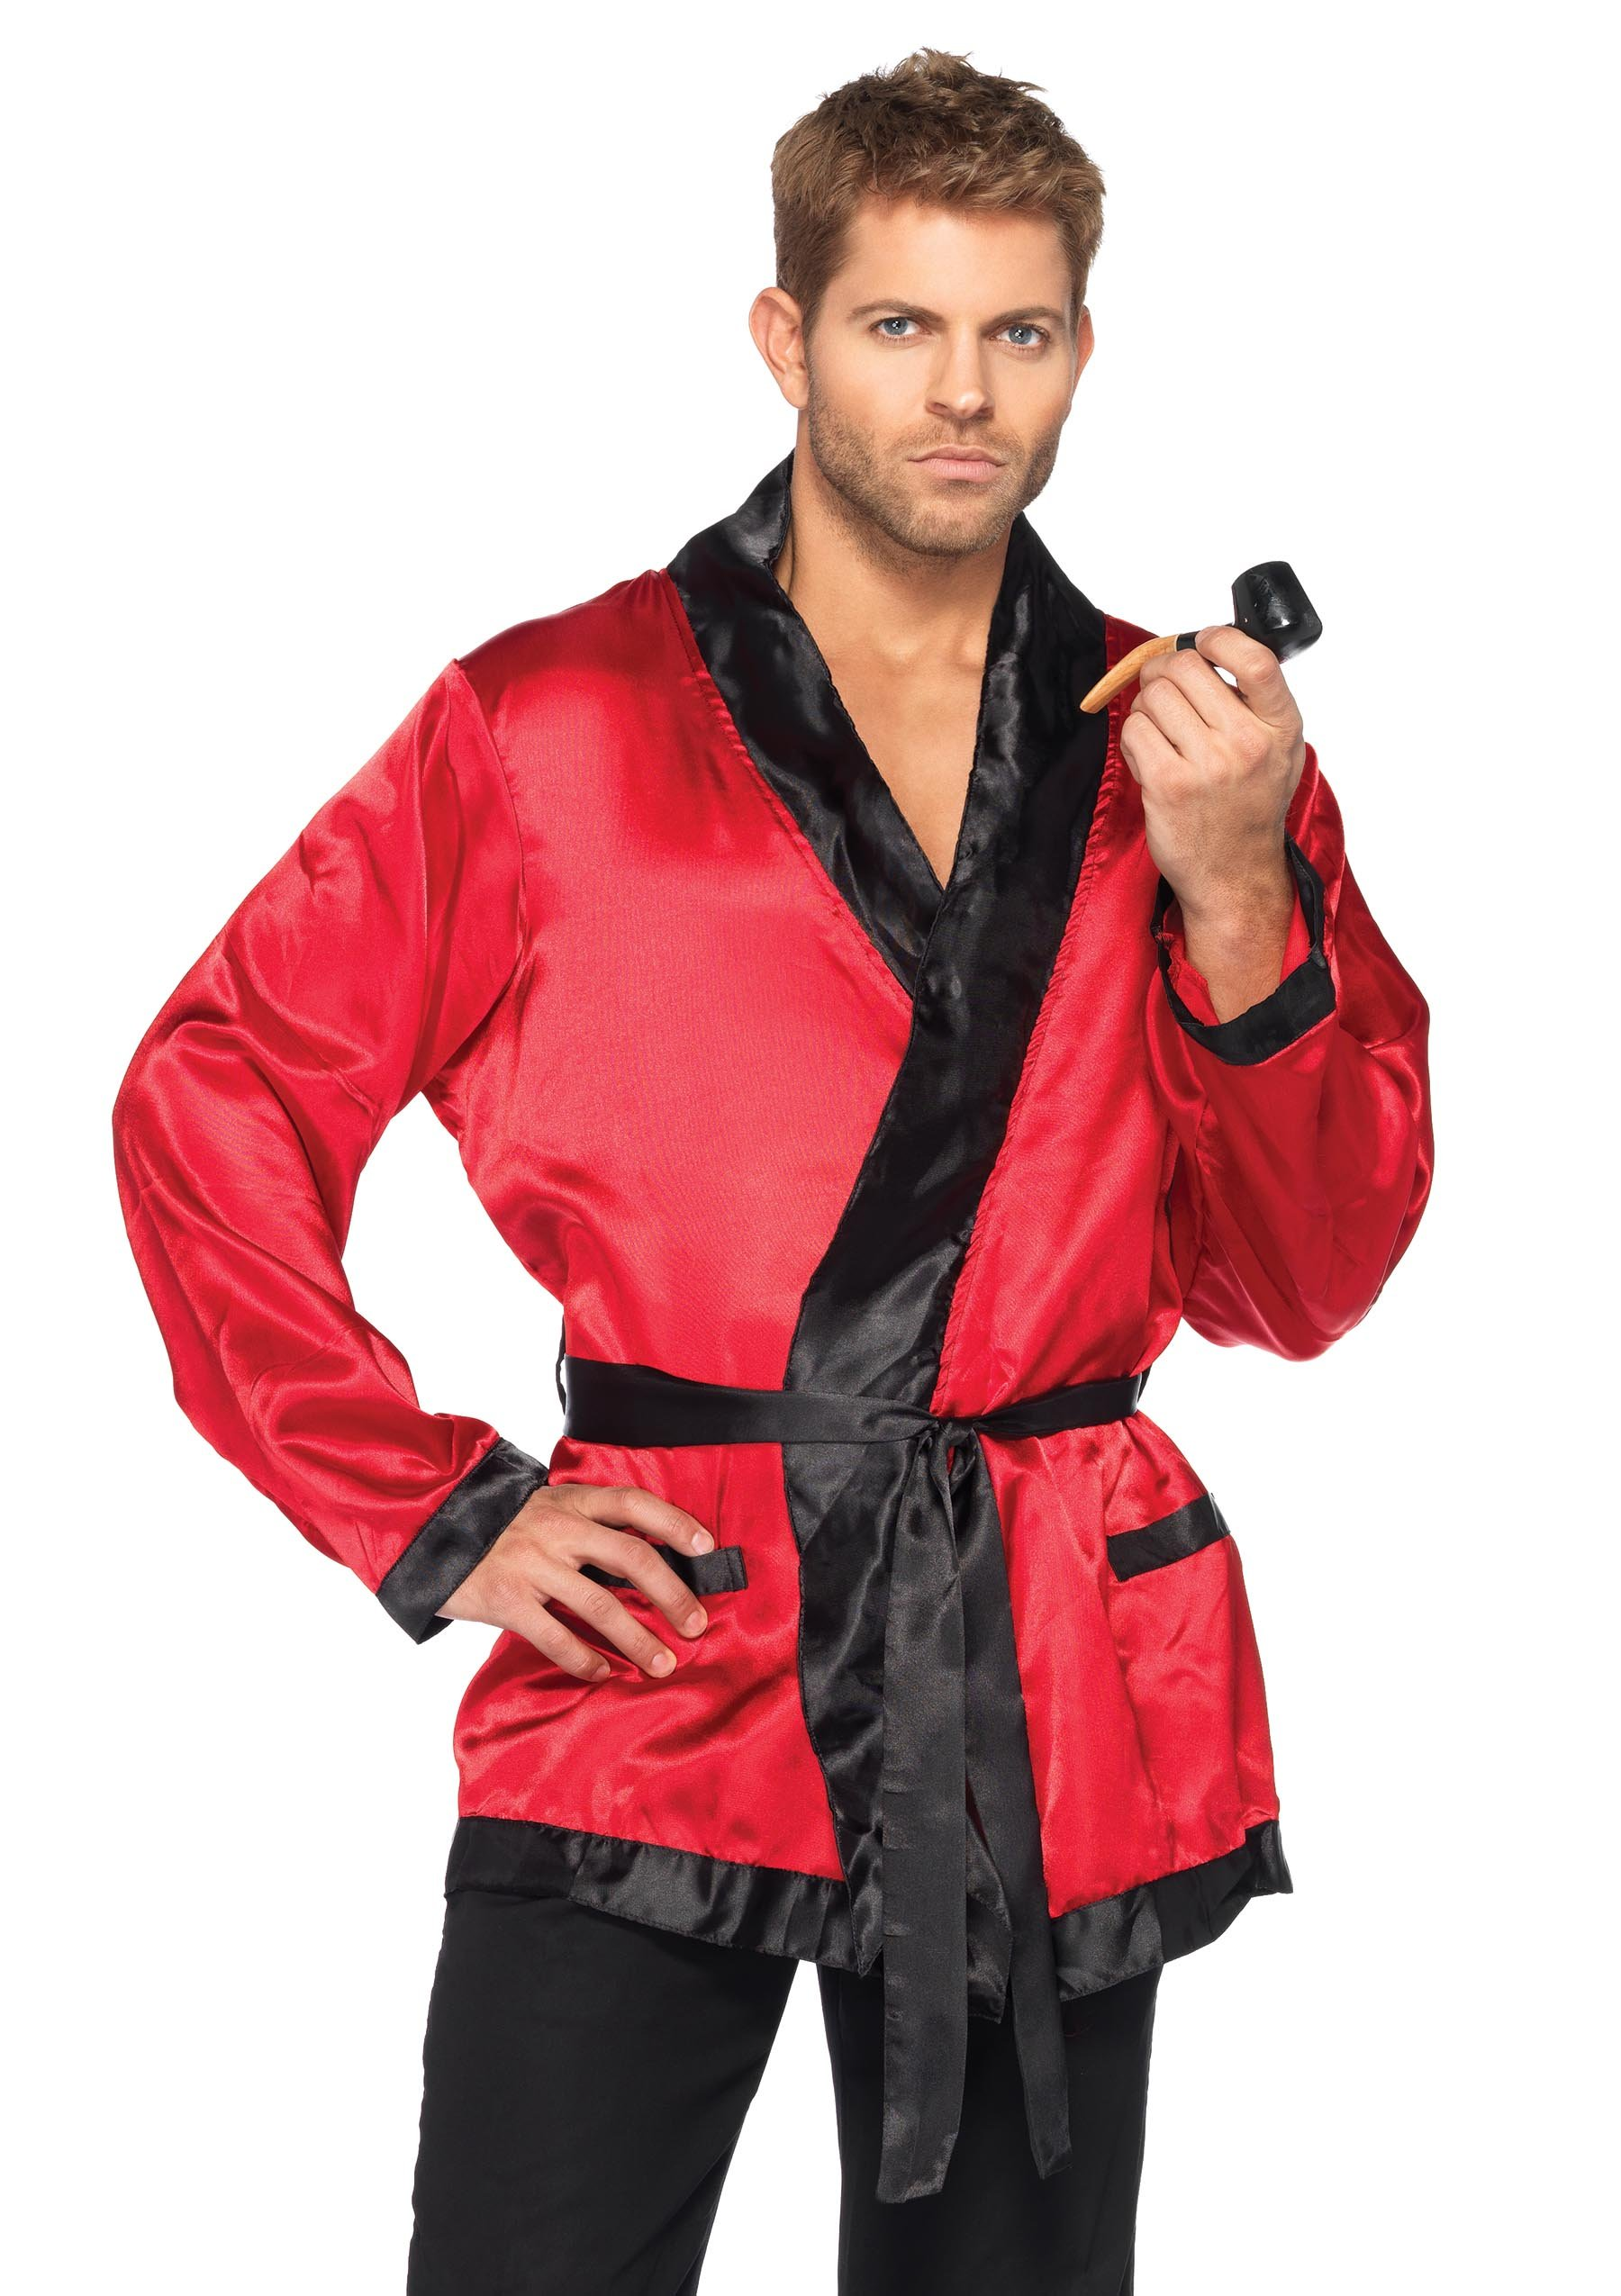 Leg Avenue Men's 2 Piece Bachelor Cigarette Smoke Jacket And Pipe Costume, Red/Black, One Size